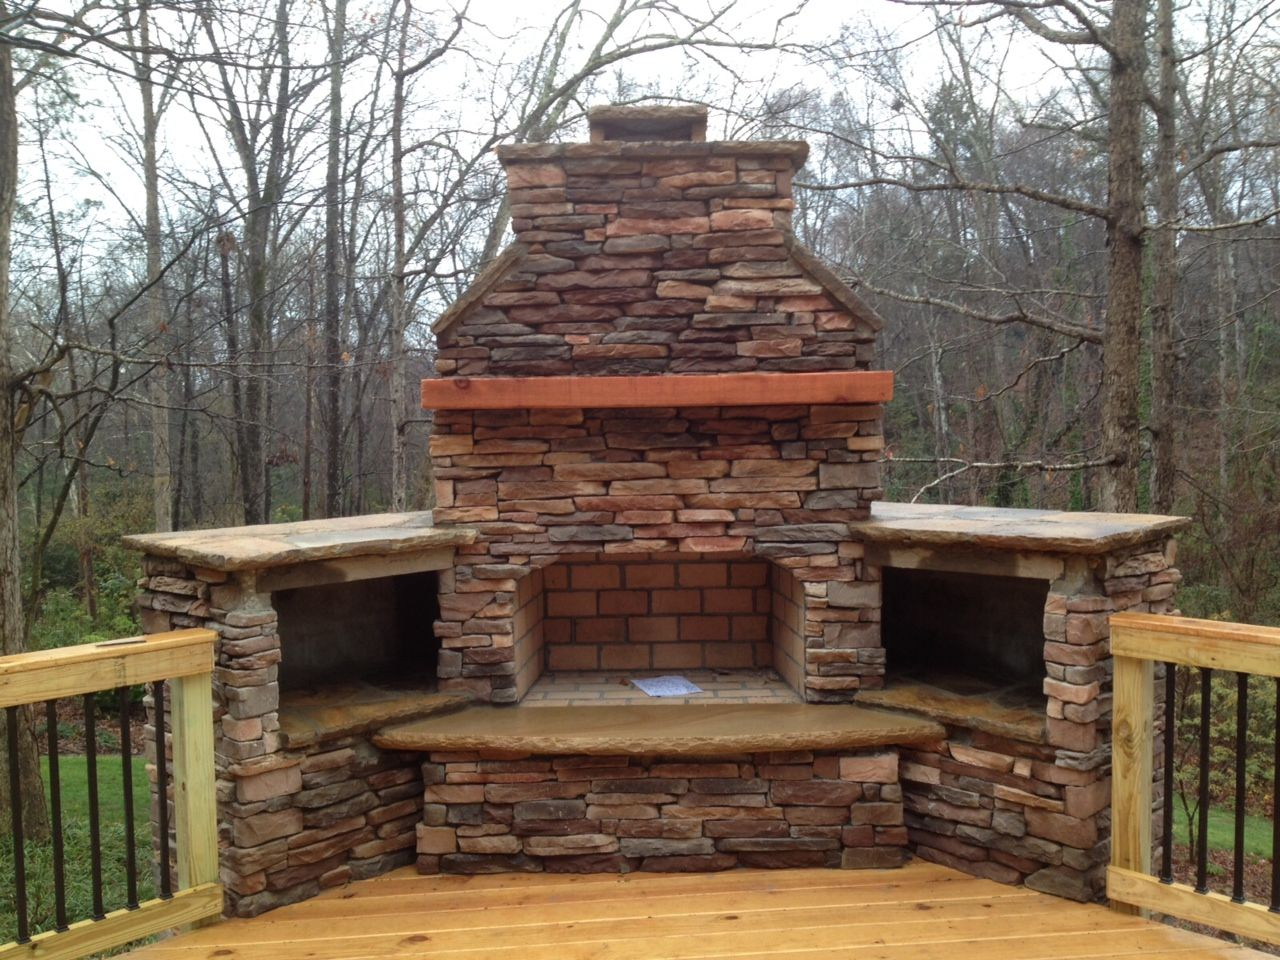 Outdoor Fireplace On Wood Deck With Deckorator Balusters Archadeck Outdoor Living Deck Ideas